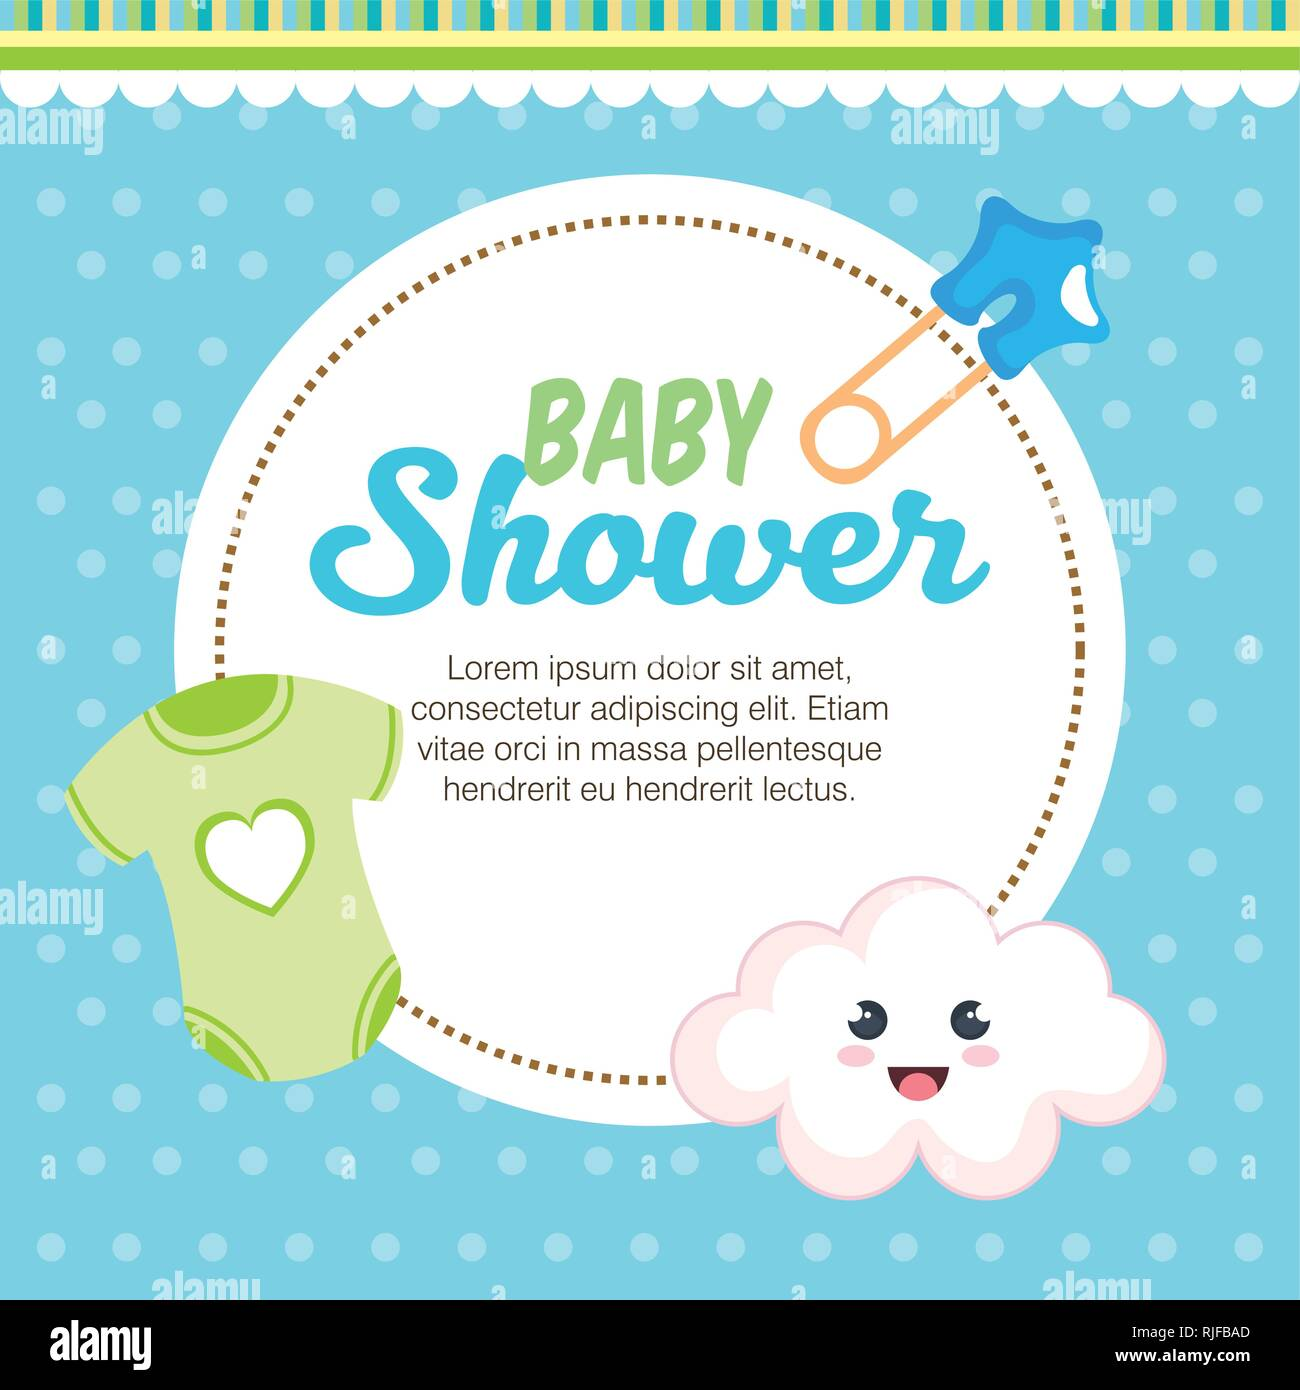 Bad Set For Baby Baby Shower Card With Set Items Stock Vector Art Illustration